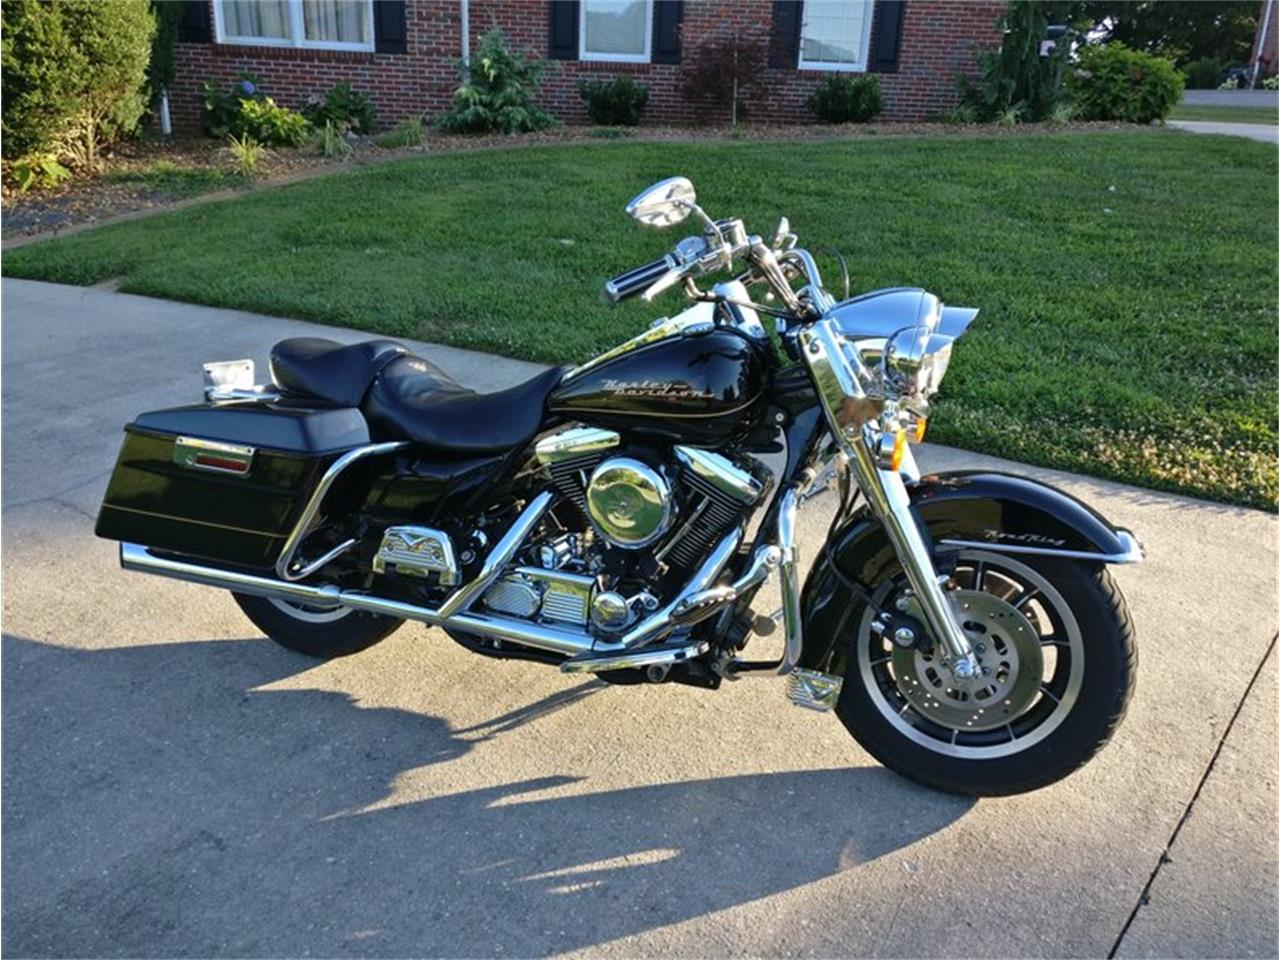 1998 Harley-Davidson Road King for sale in Cookeville, TN – photo 4